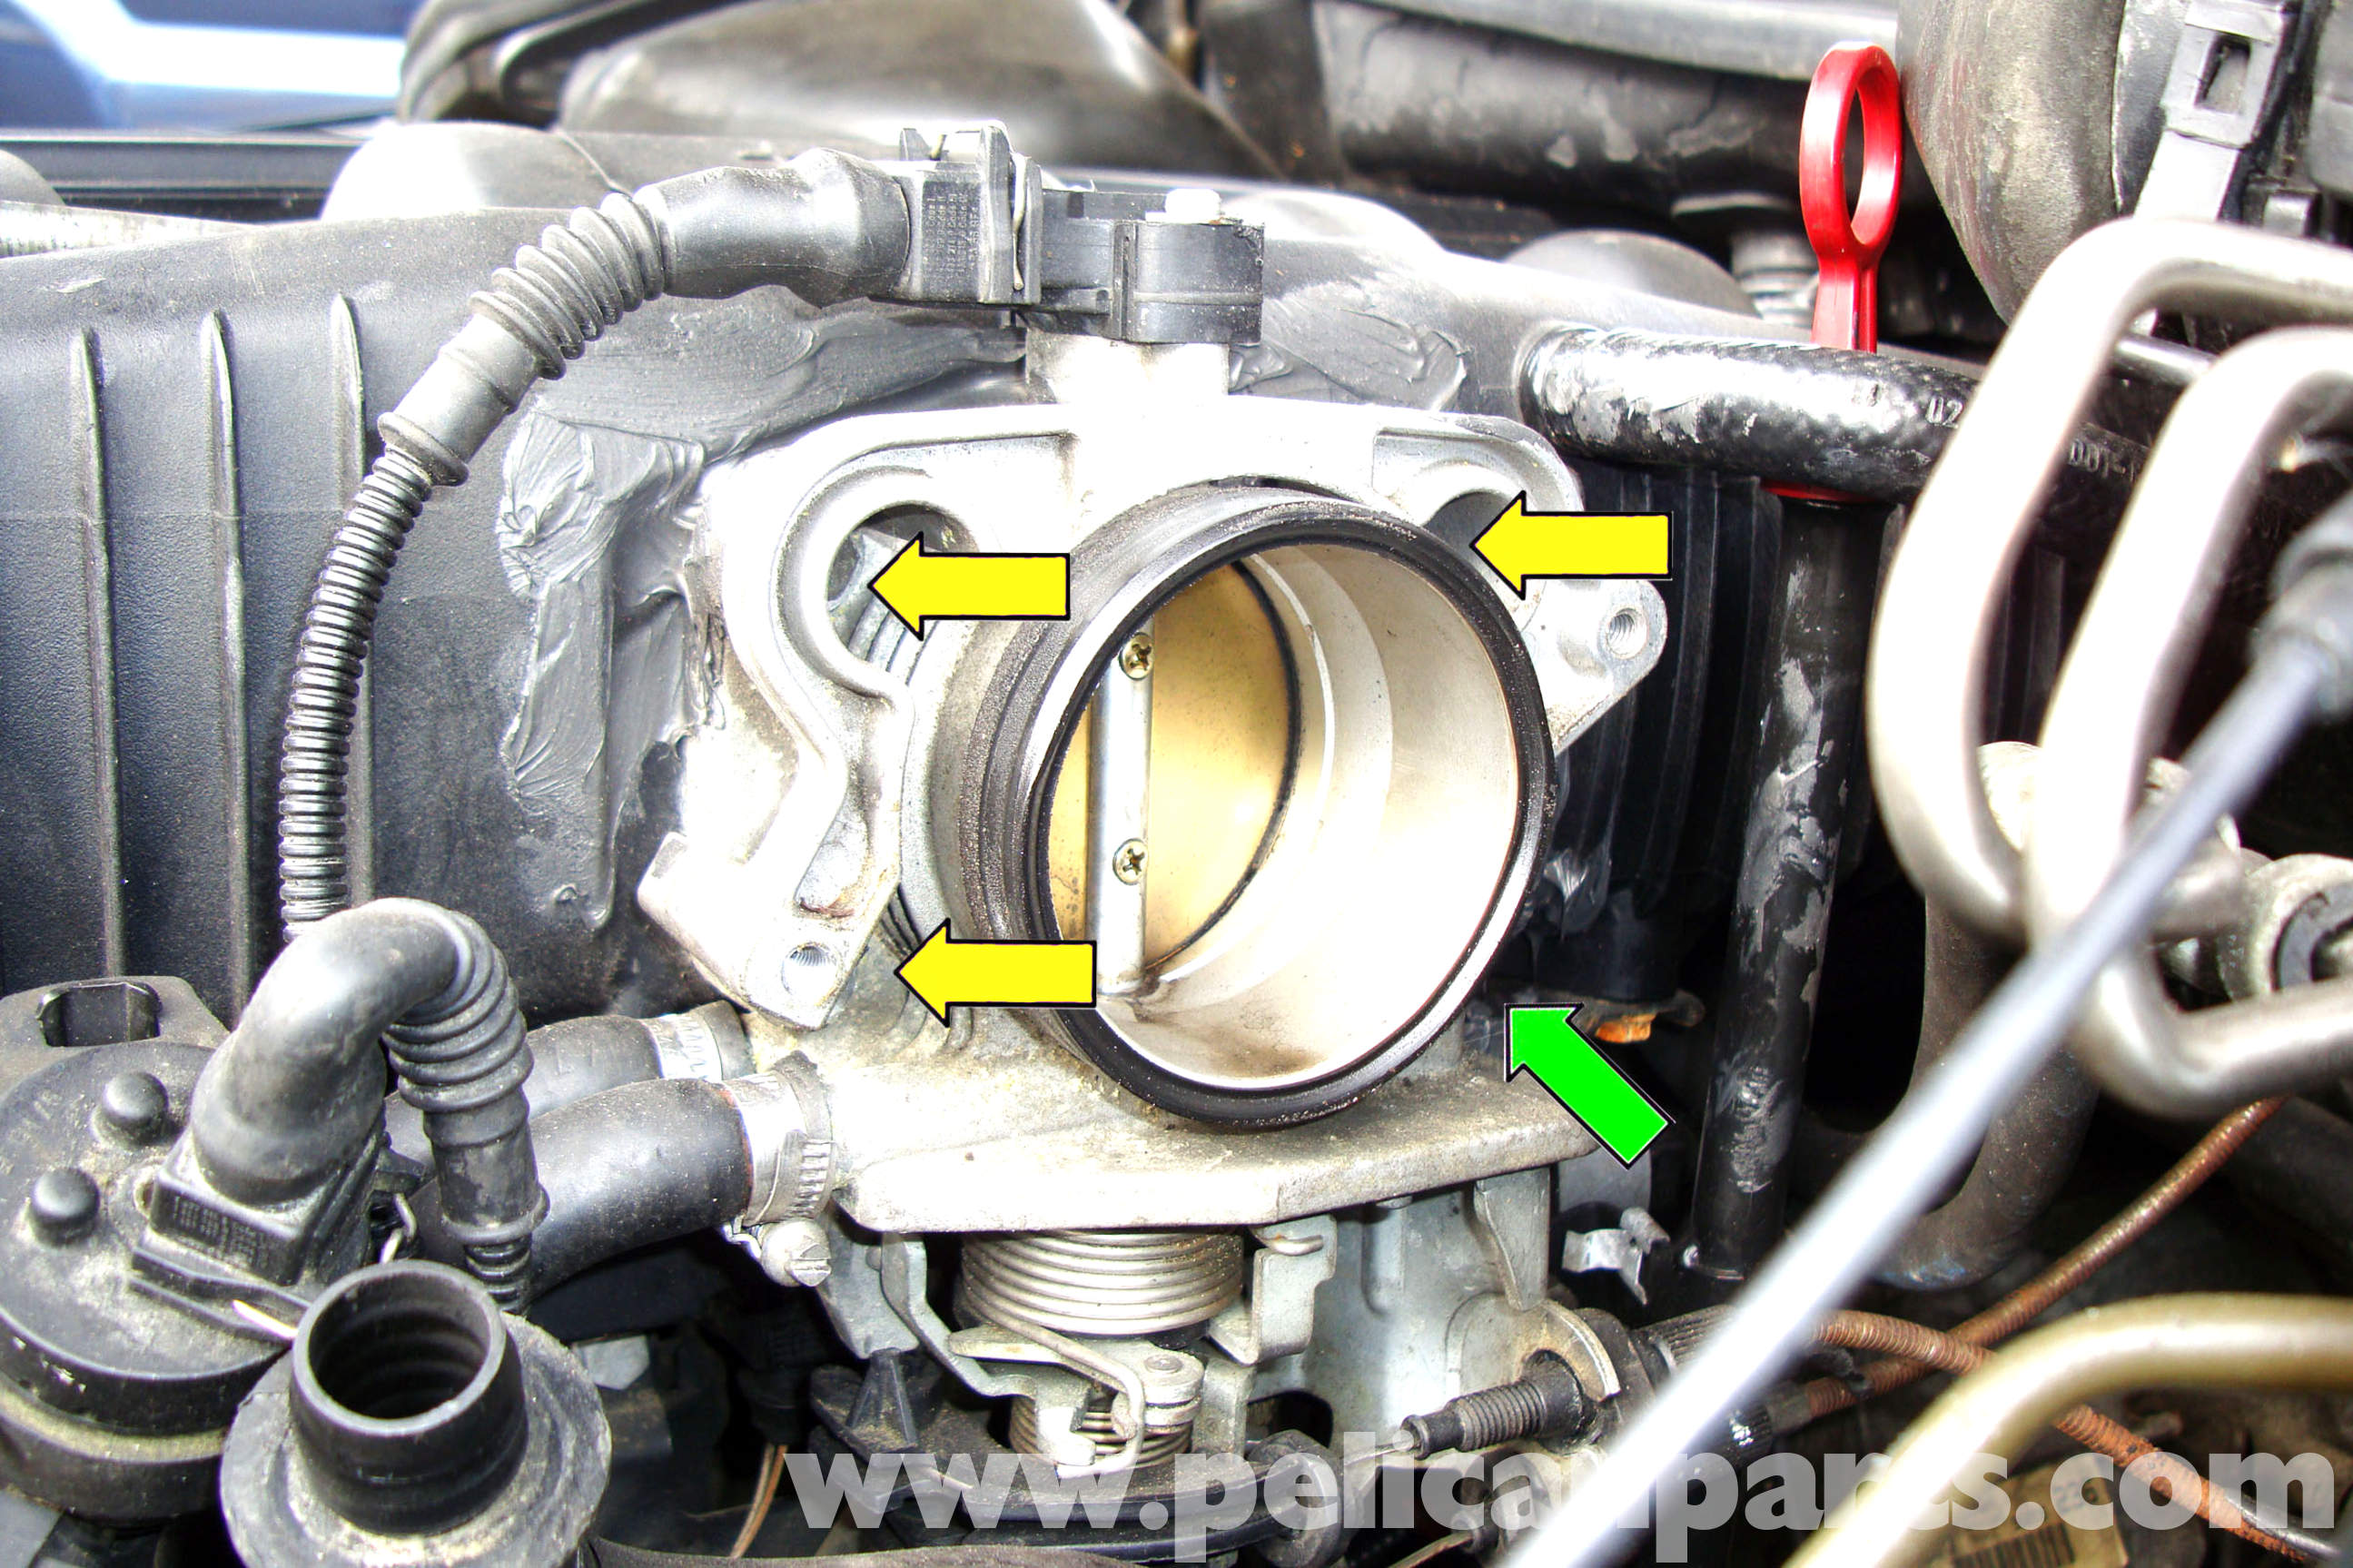 Bmw E39 5 Series Throttle Housing Removal 1997 2003 525i 528i Position Sensor Wire Diagram 4 Large Image Extra Squeeze The Retaining Clip On For